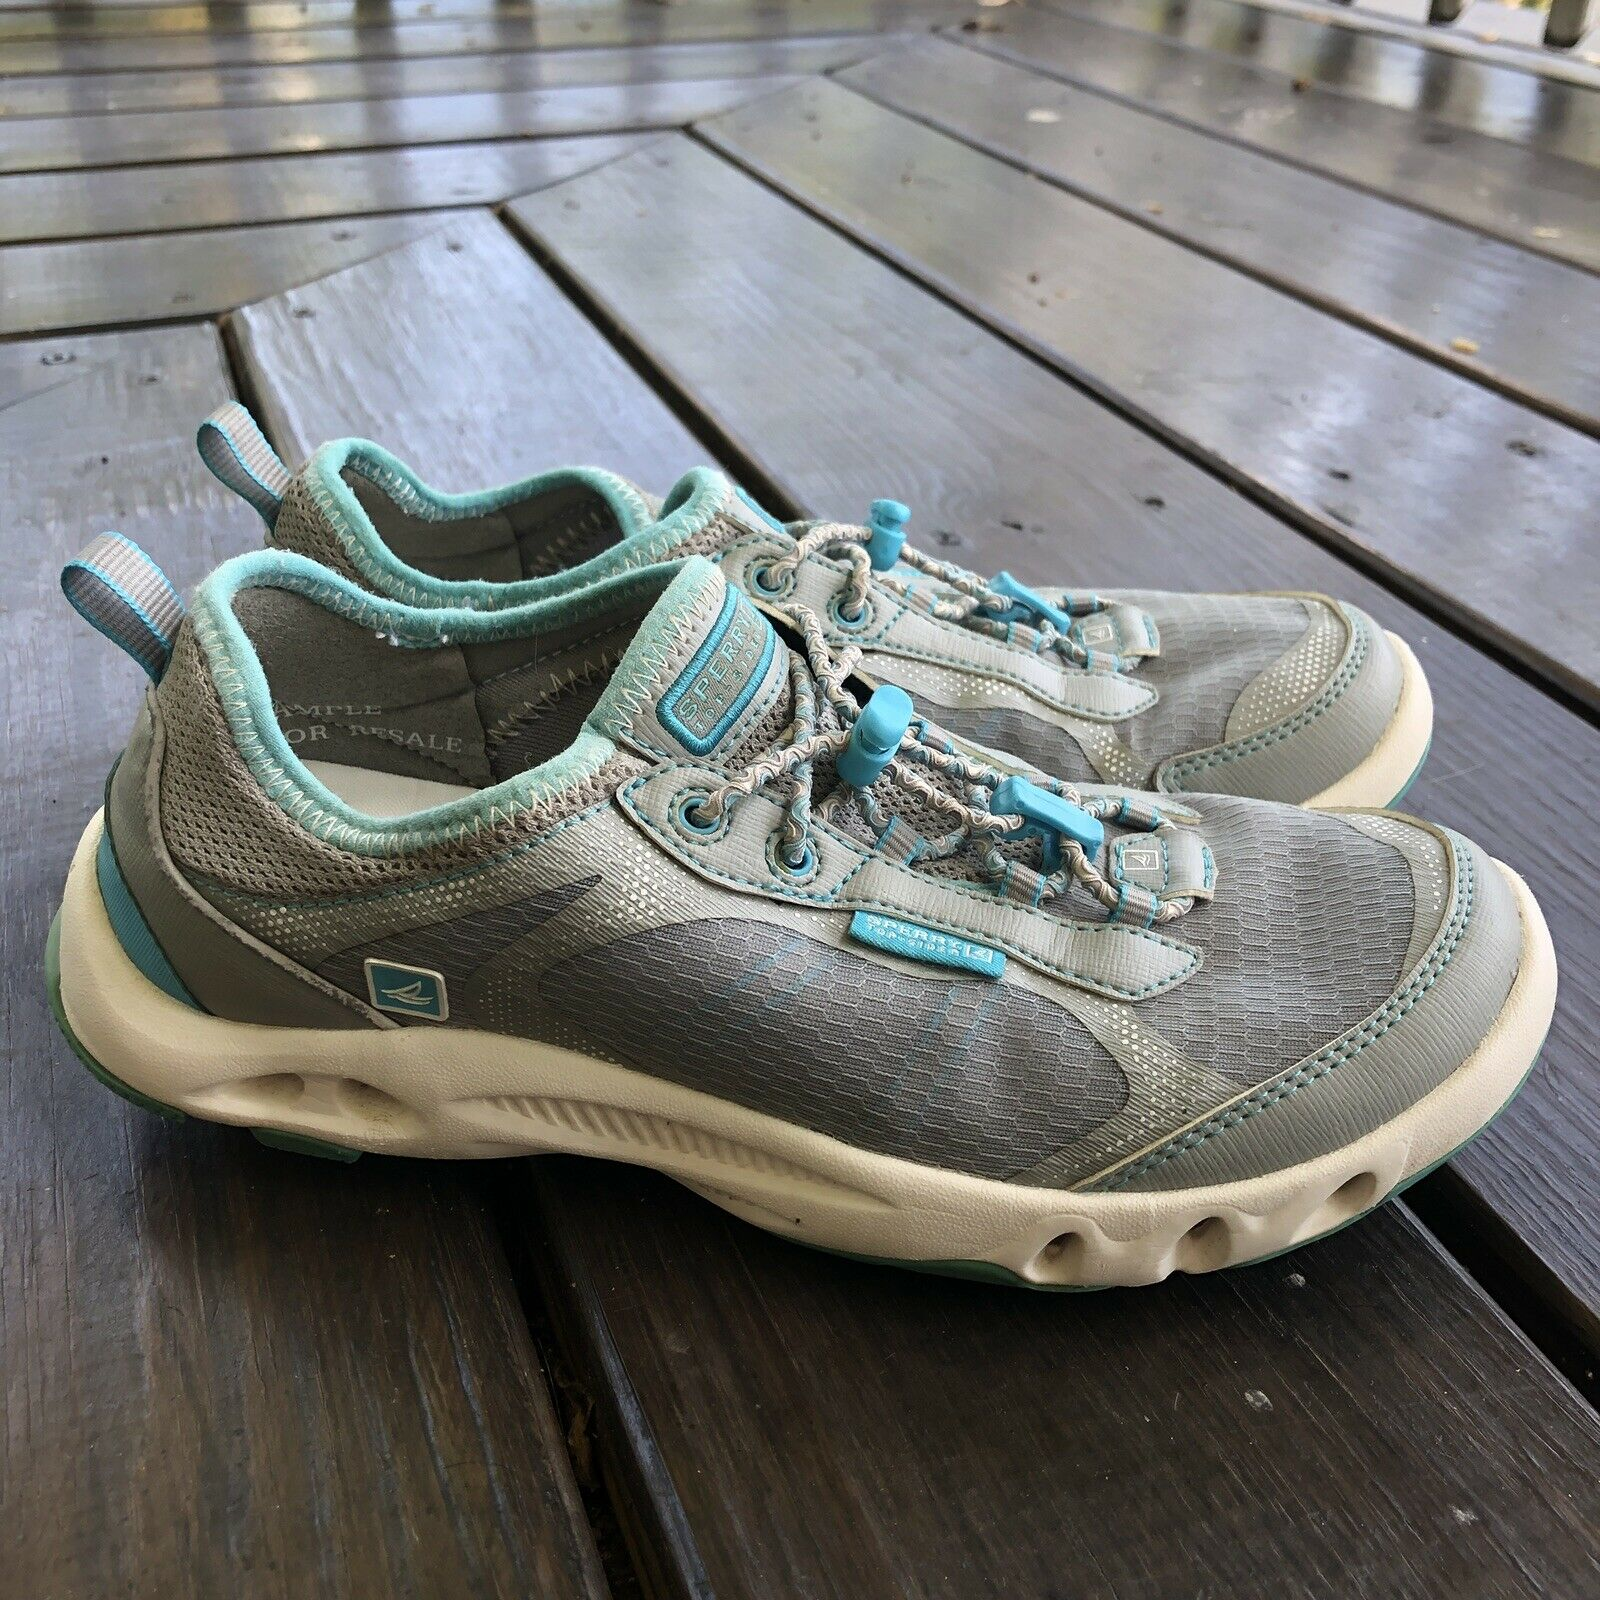 Women's Sperry H2O Escape Bungee Water Outdoor Shoes Blue Gray Size 7 CH210